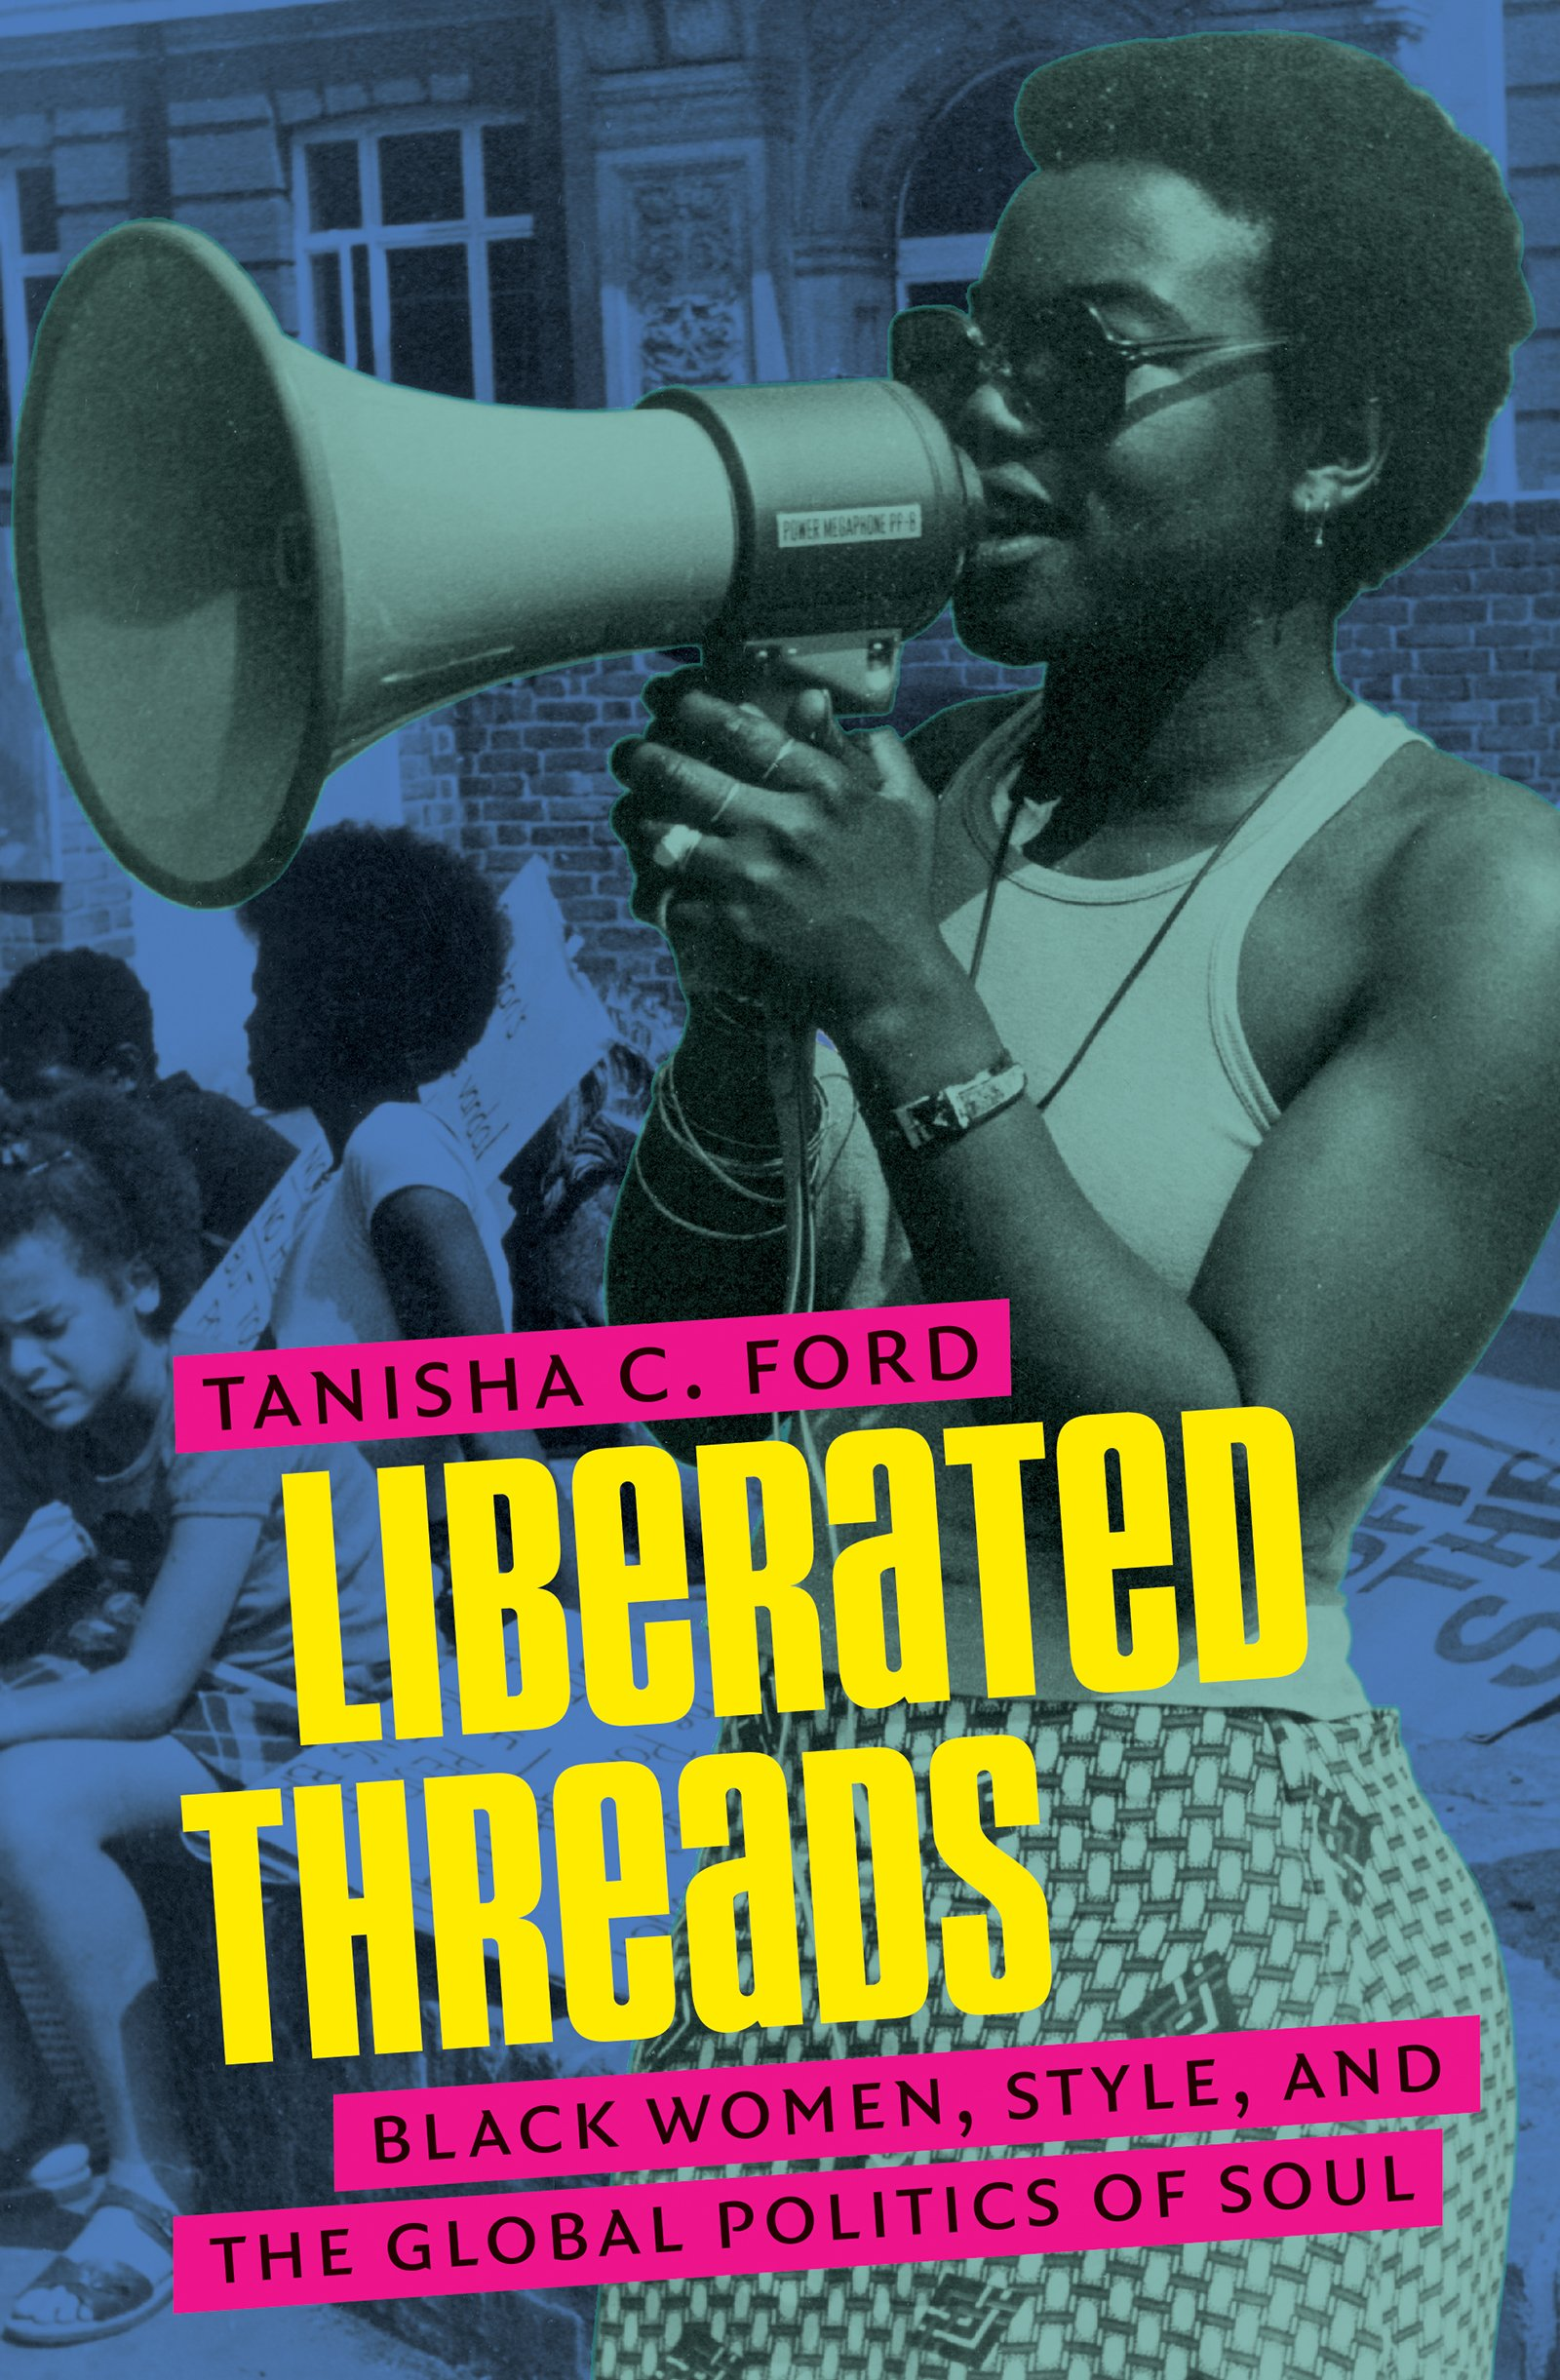 liberated-threads-black-women-style-and-the-global-politics-of-soul-gender-and-american-culture